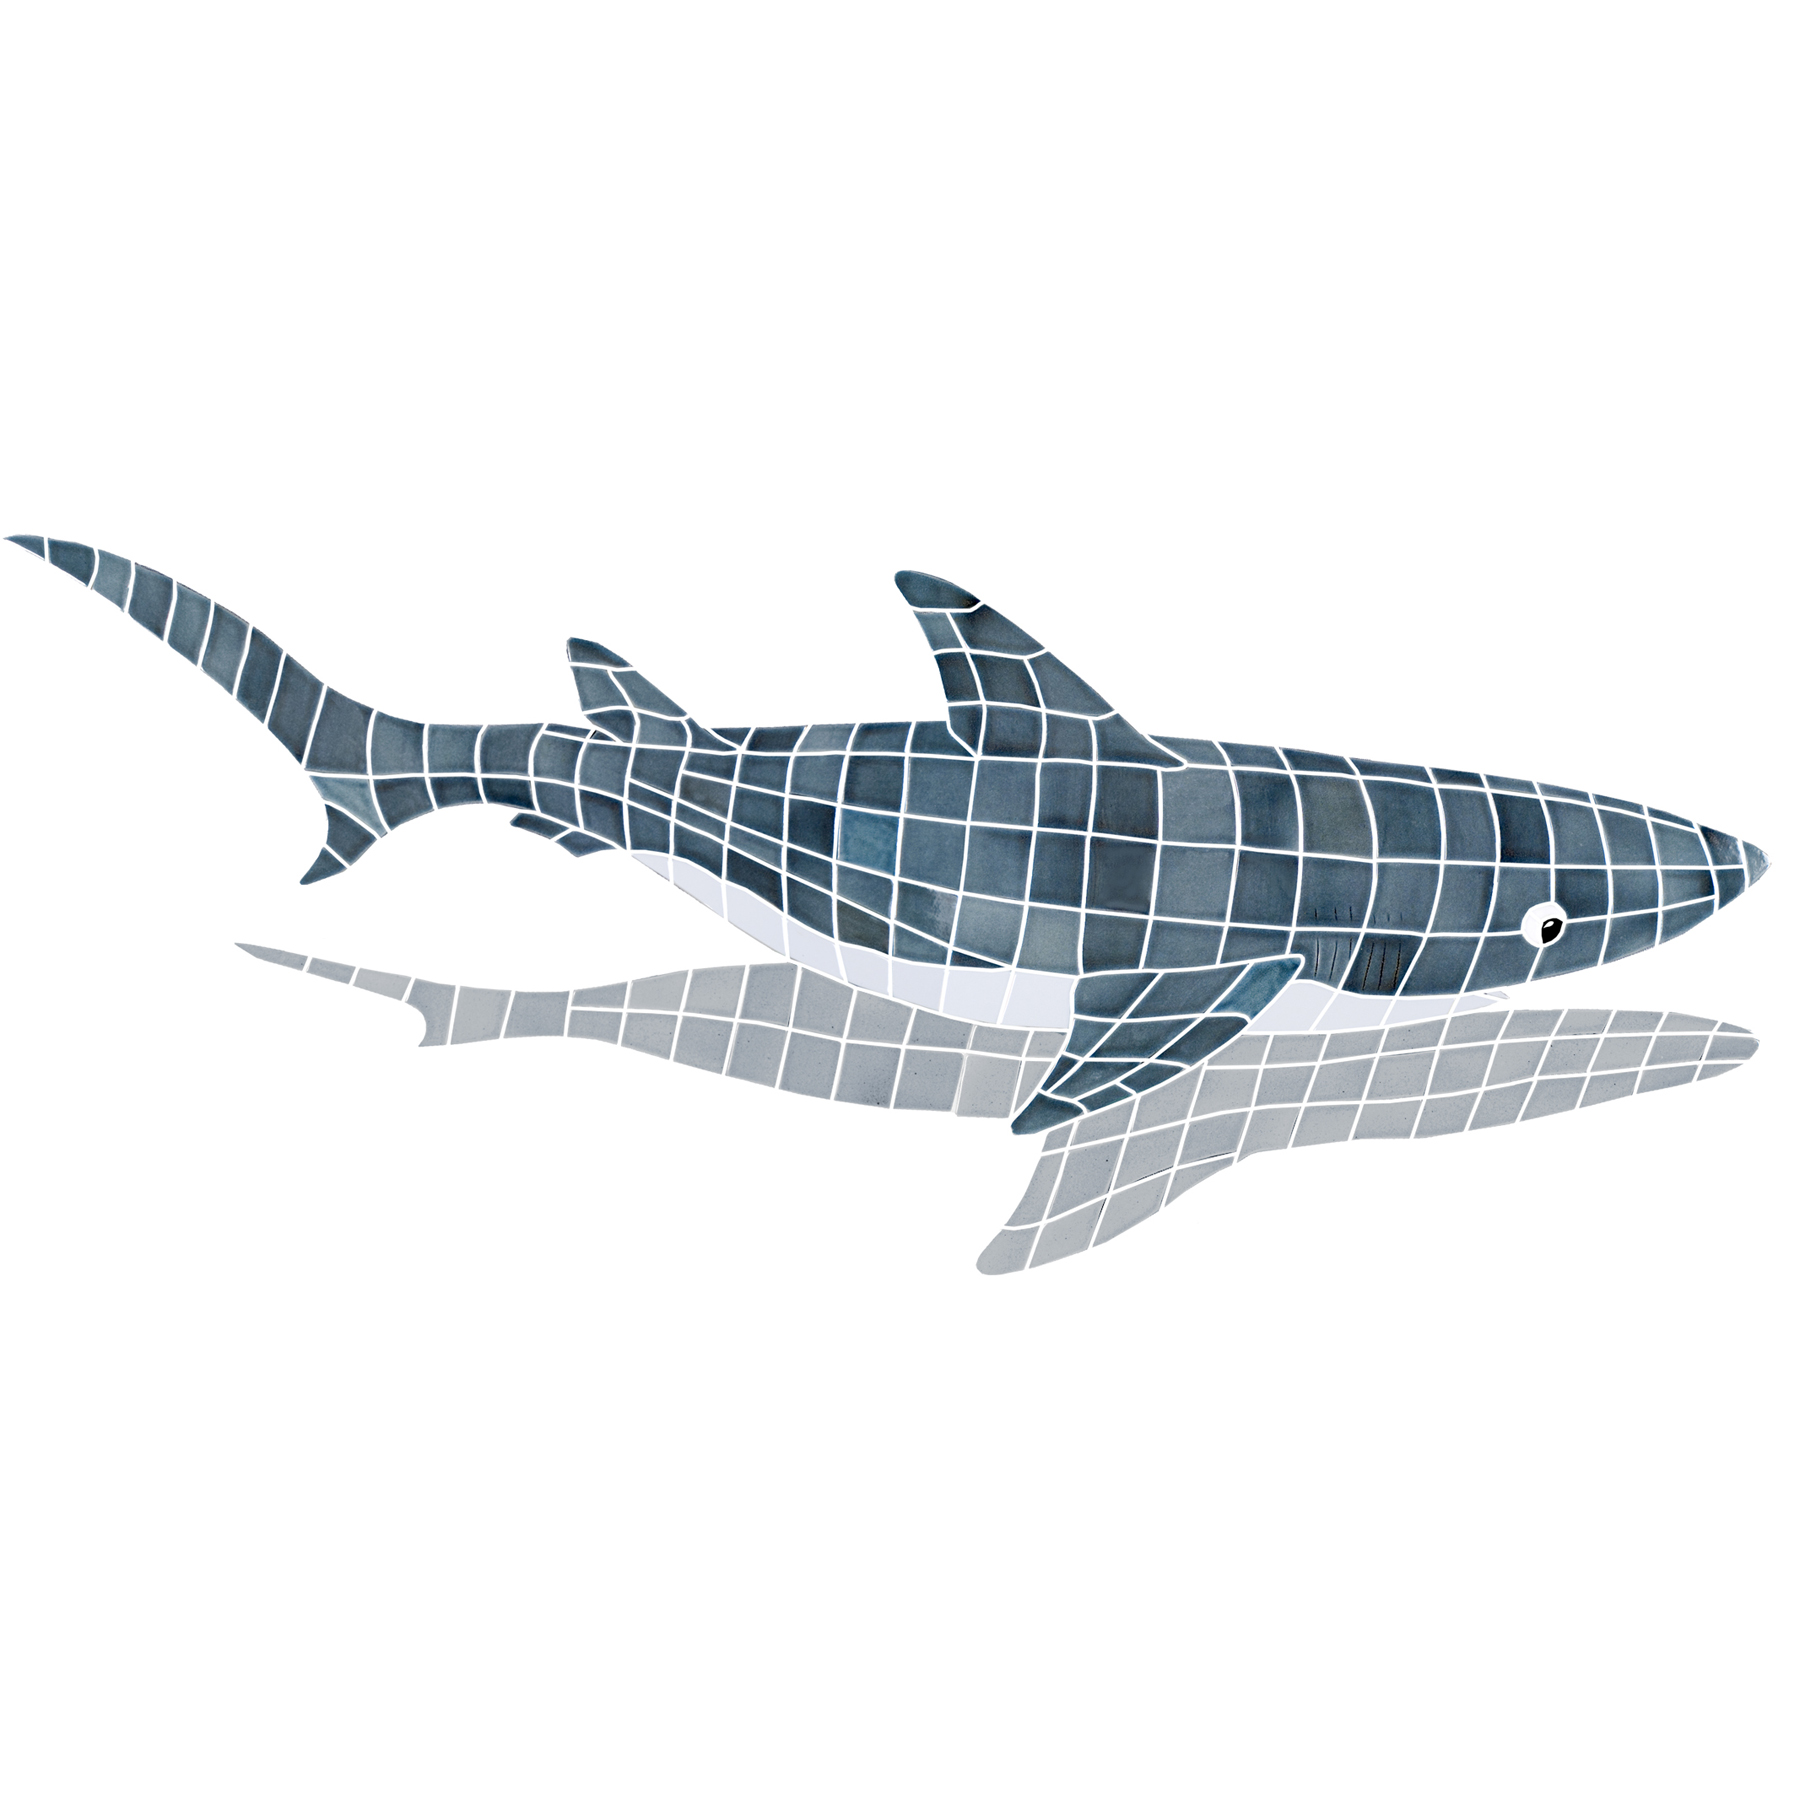 Ceramic Mosaic Shark Pool Murals